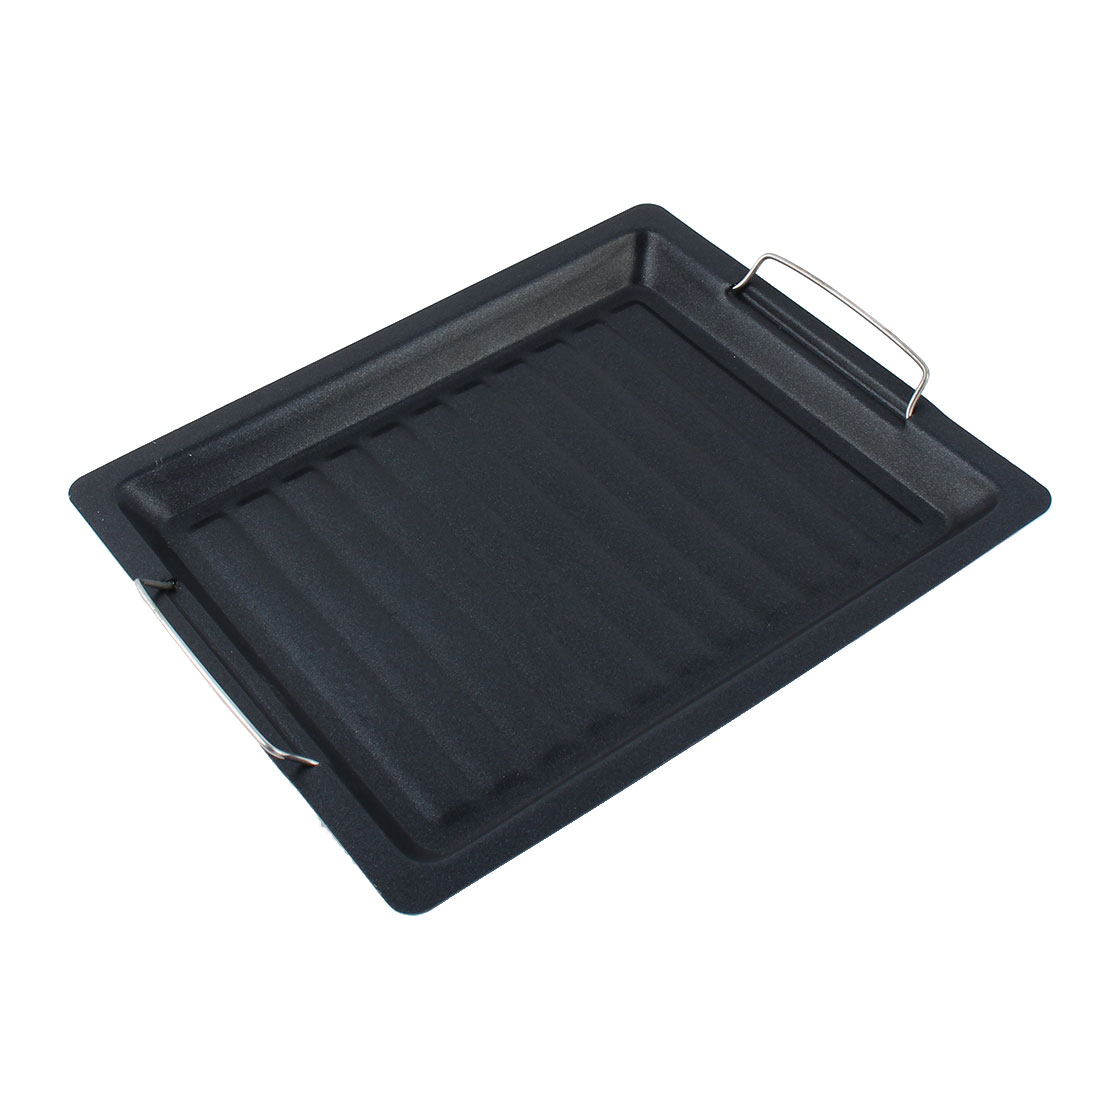 Outdoor Camping Picnic BBQ Barbecue Metal Grill Tool Drip Tray Roasting Pan